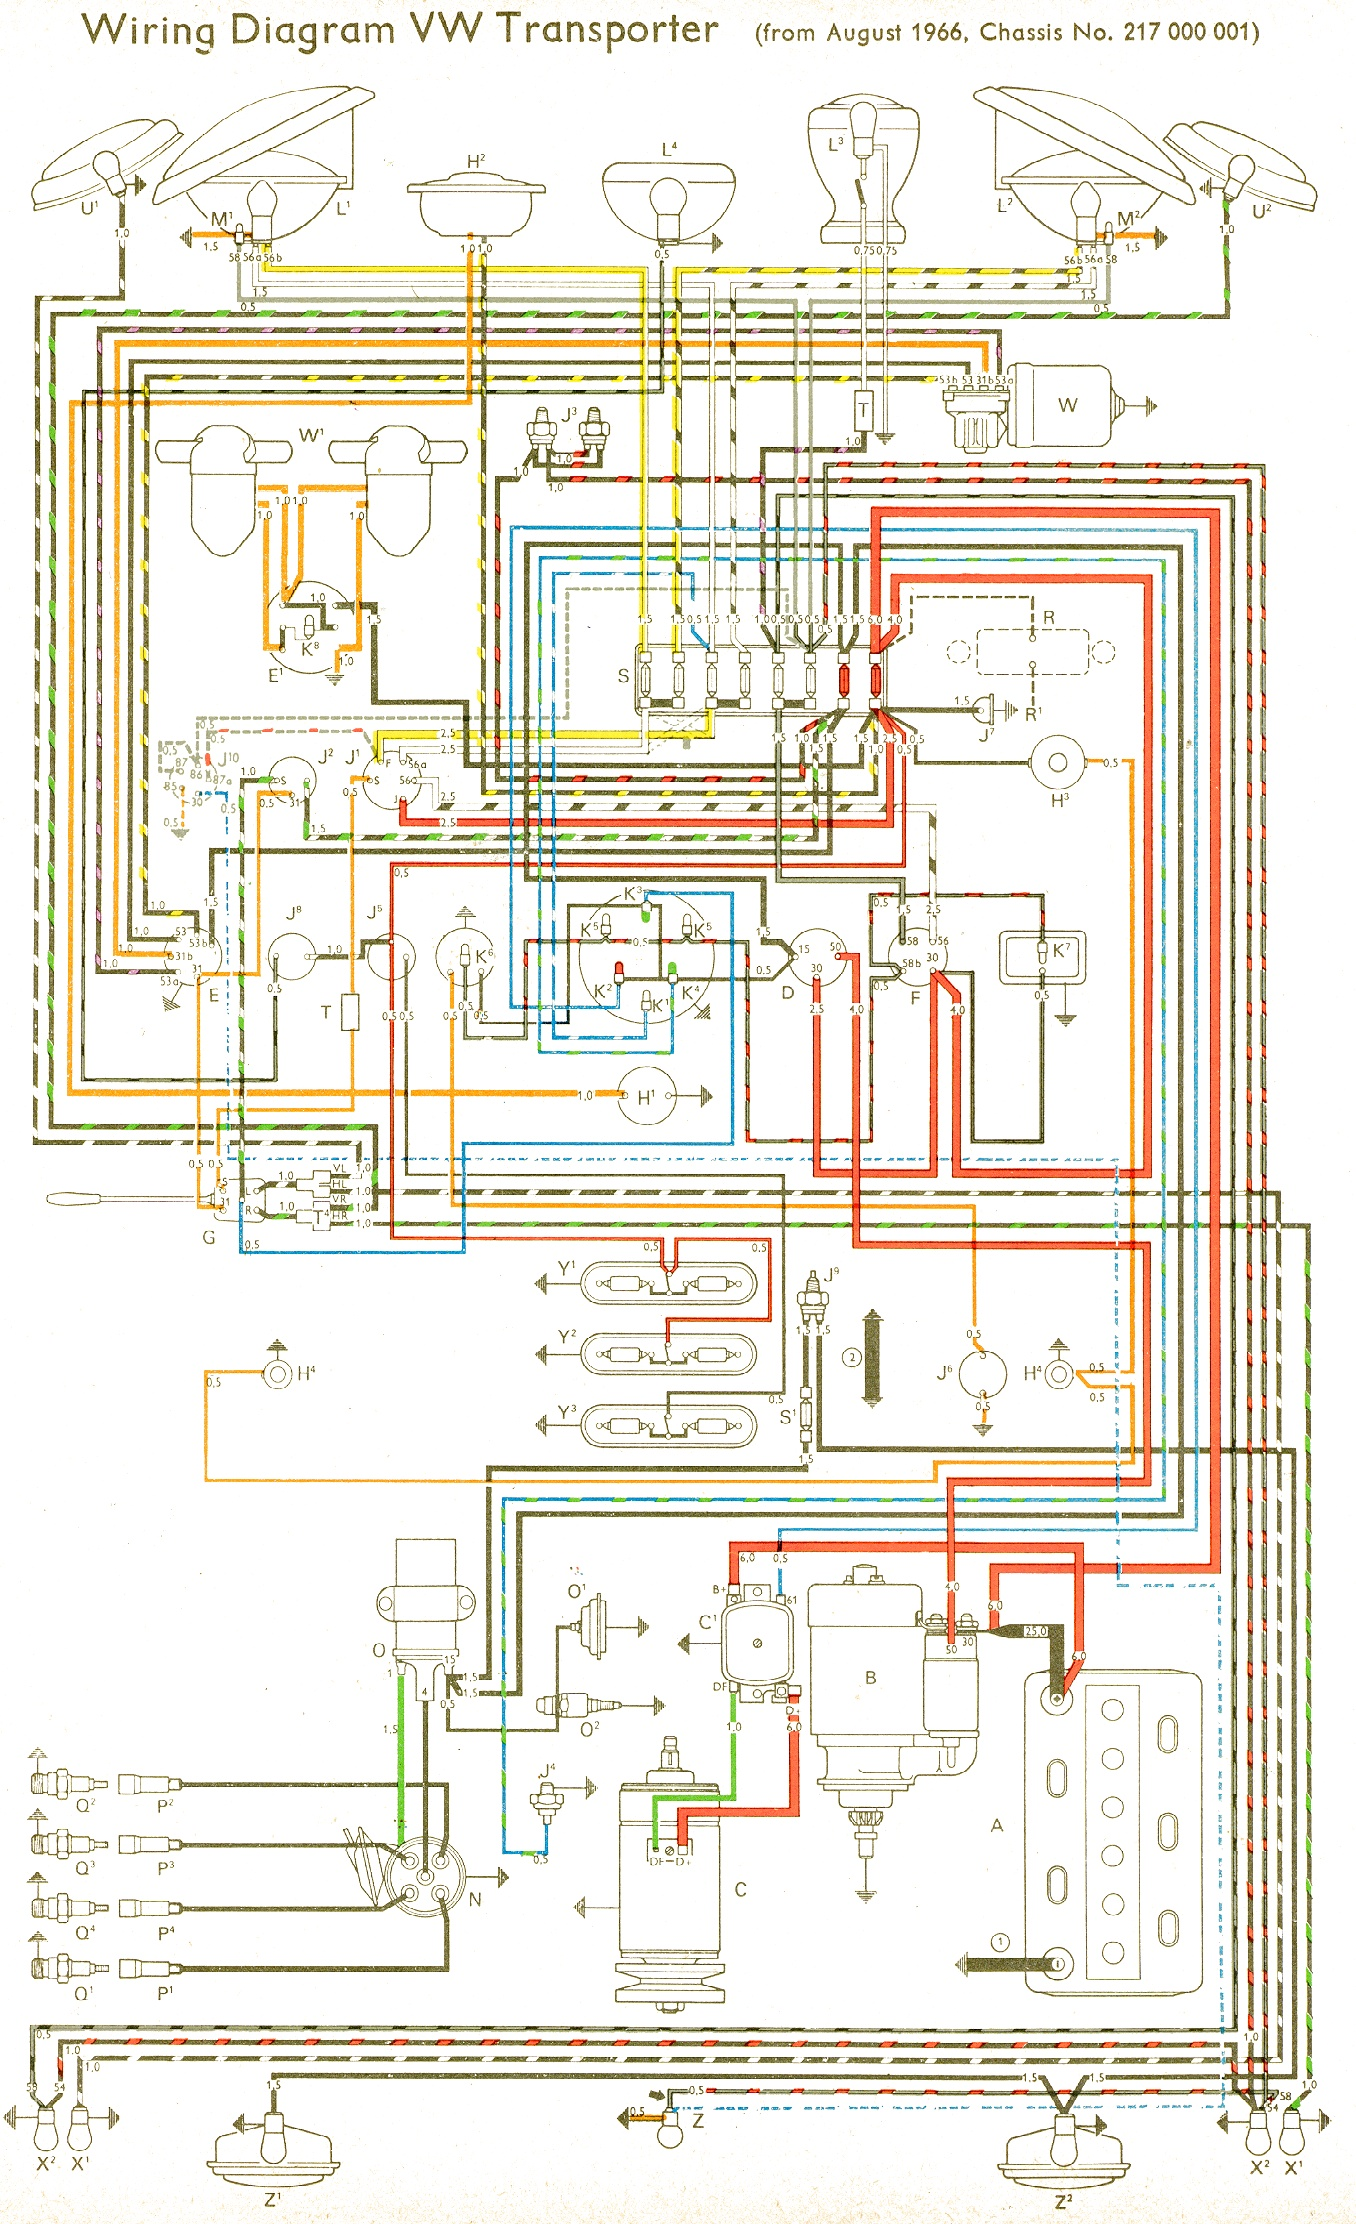 bus 66 bus wiring diagram vw wiring harness diagram \u2022 wiring diagrams j 1971 vw bus wiring diagram at crackthecode.co